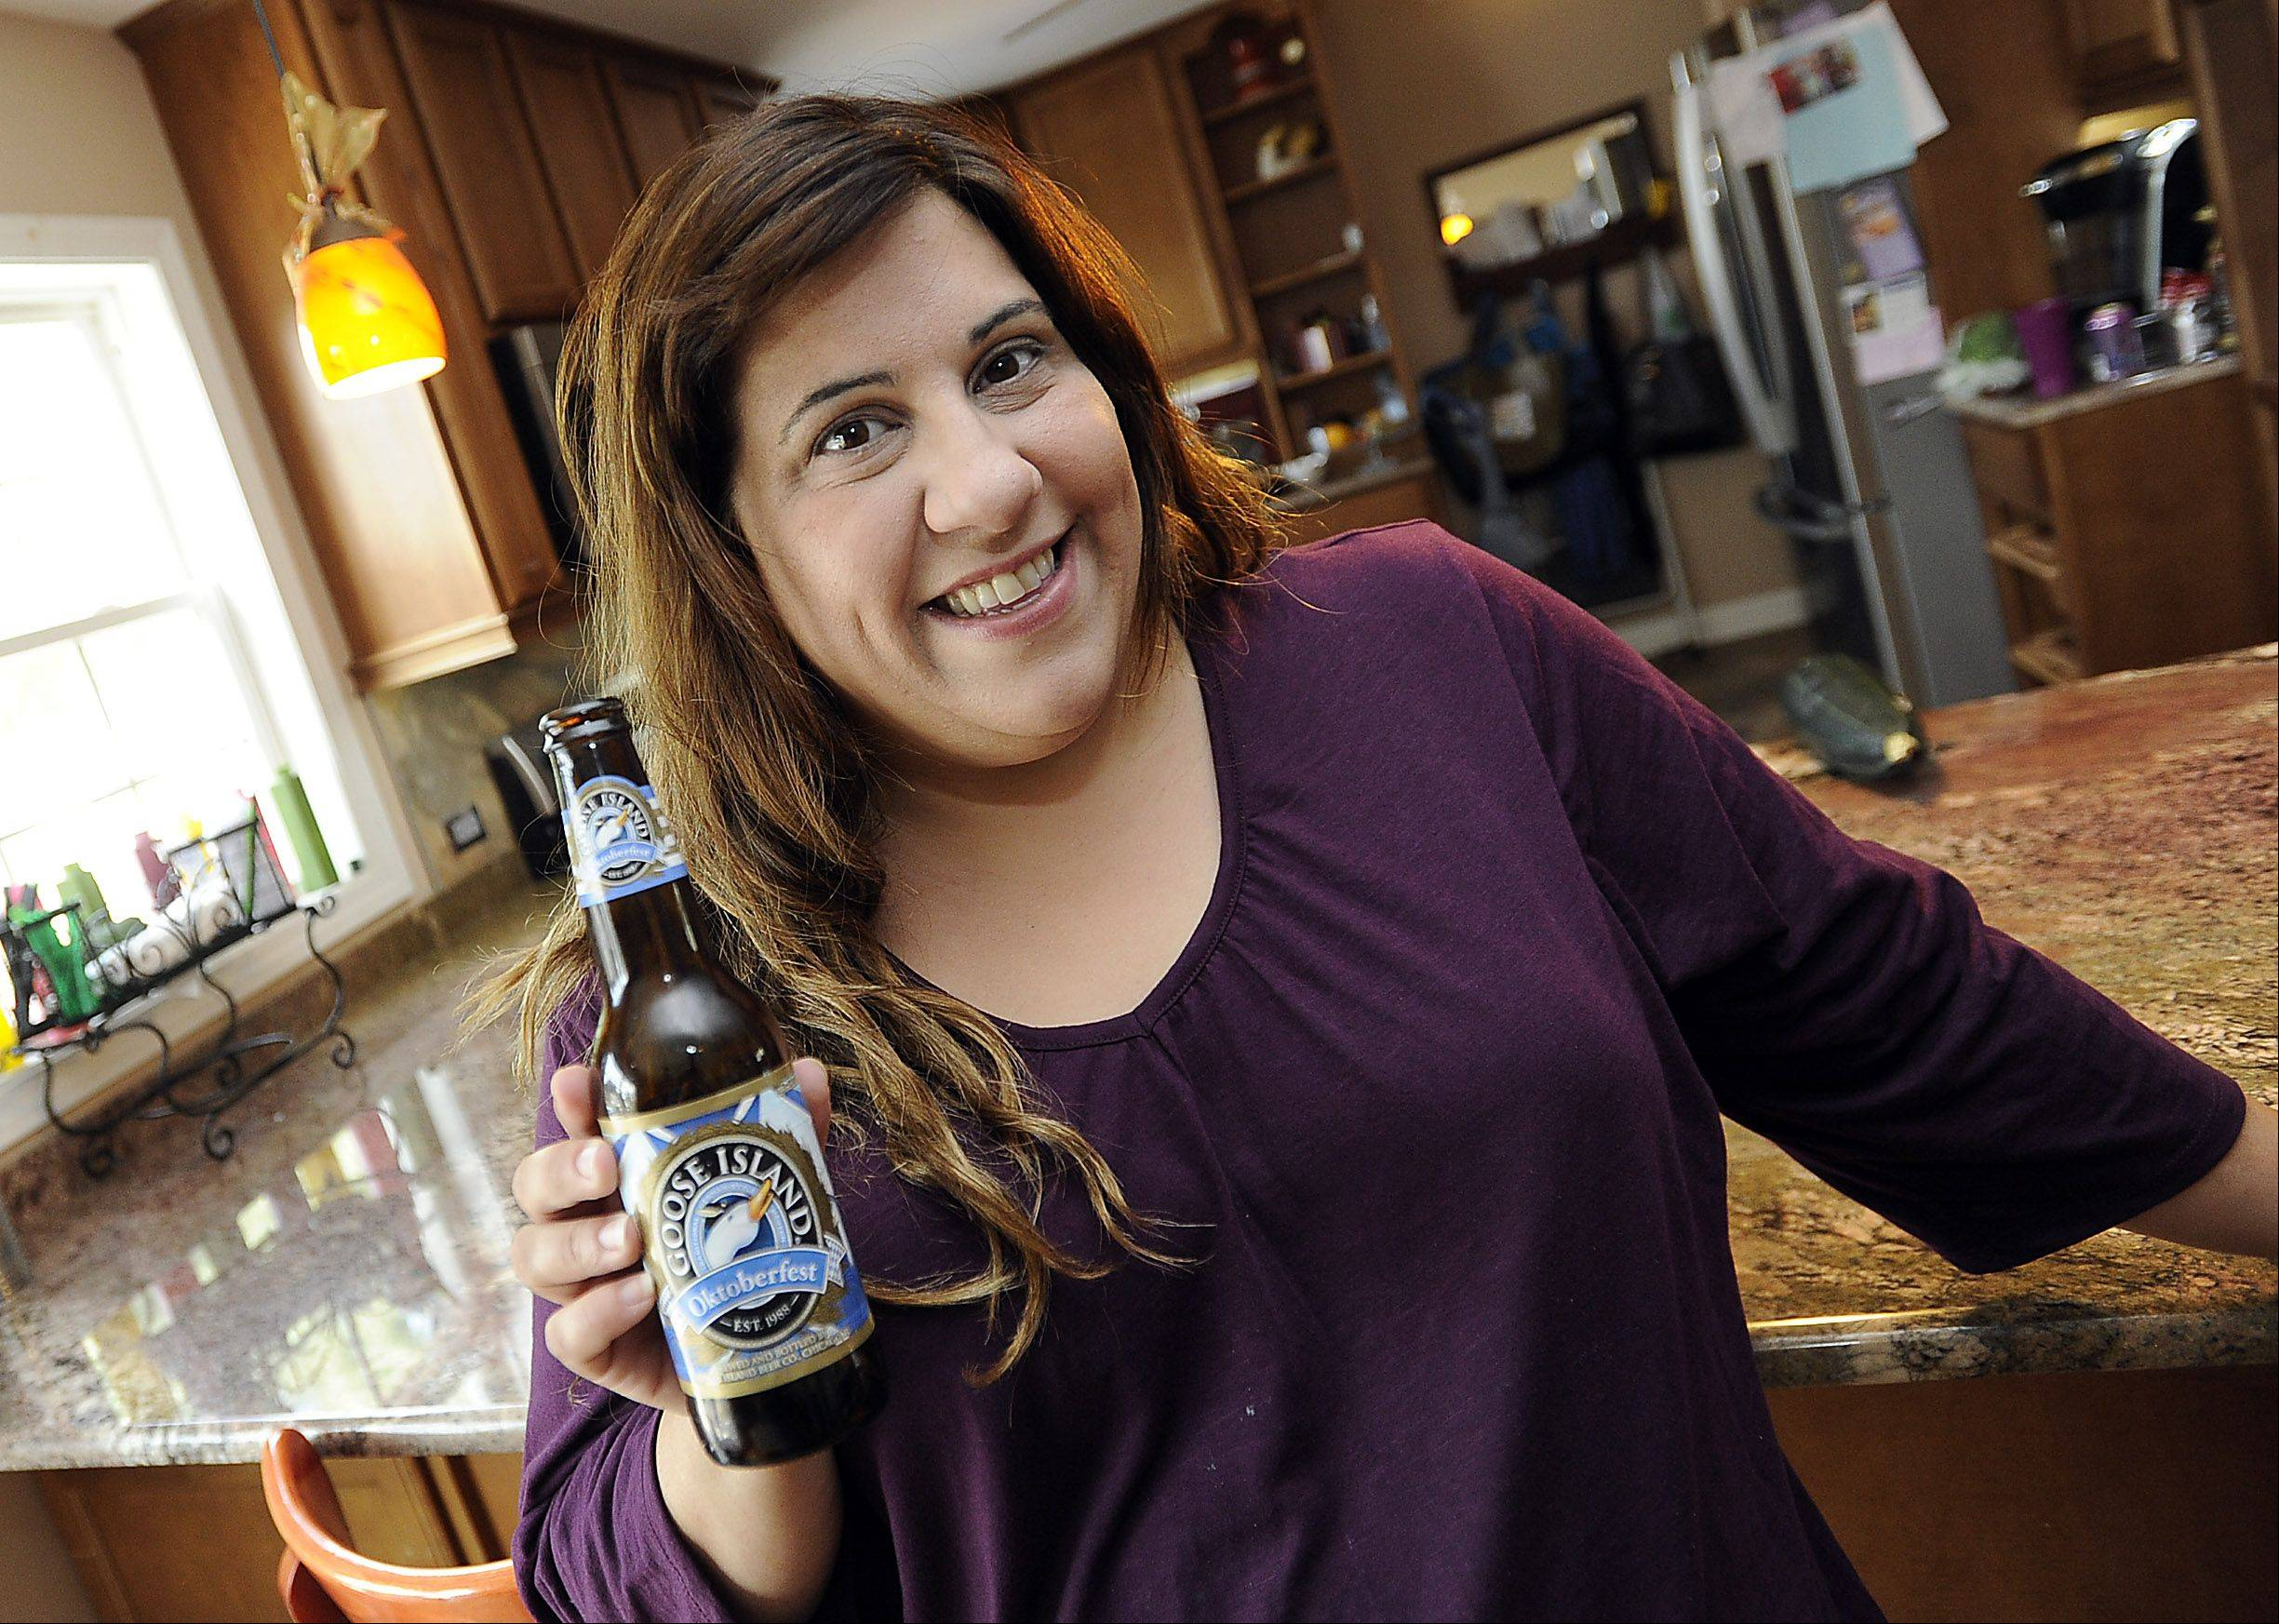 Cook of the Week Tina Garrett with her favorite ingredient to cook with and use in her food dishes, Goose Island Oktoberfest beer.